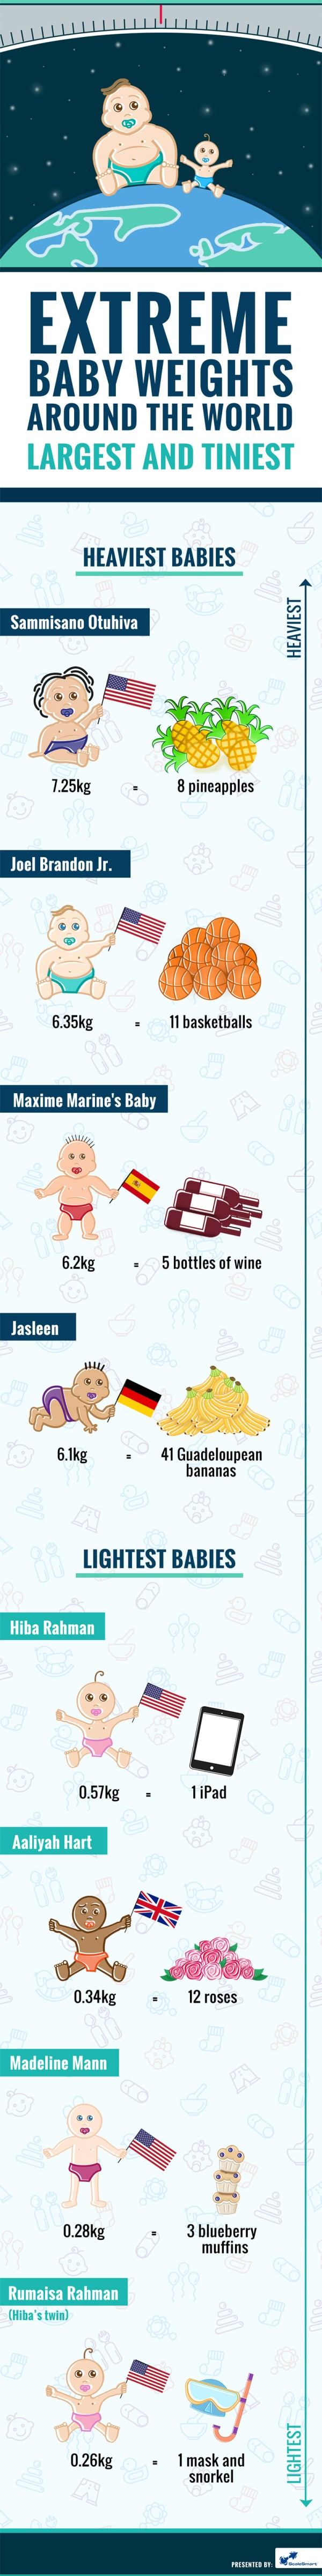 Extreme_Baby_Weights-Scalesmart-Infographic (2)